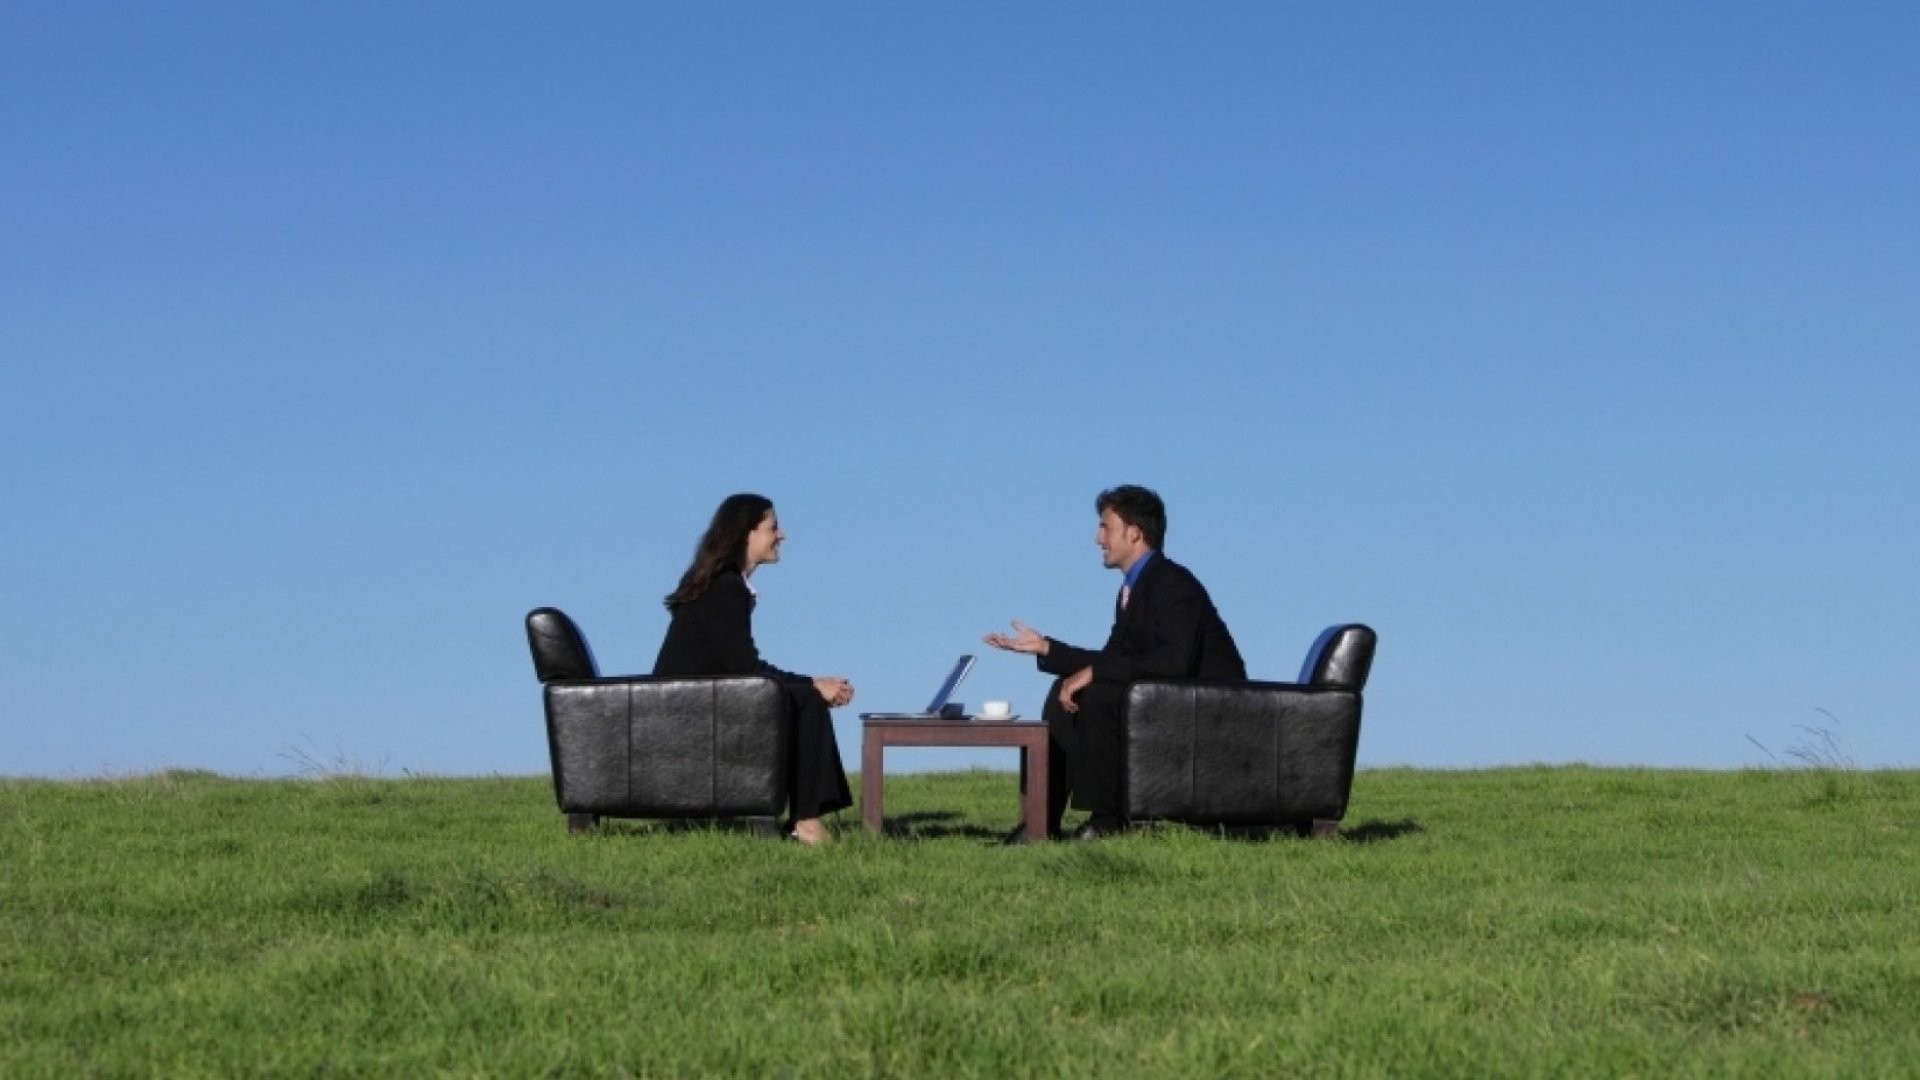 3 Things Everyone Should Do in the First 5 Minutes of an Interview